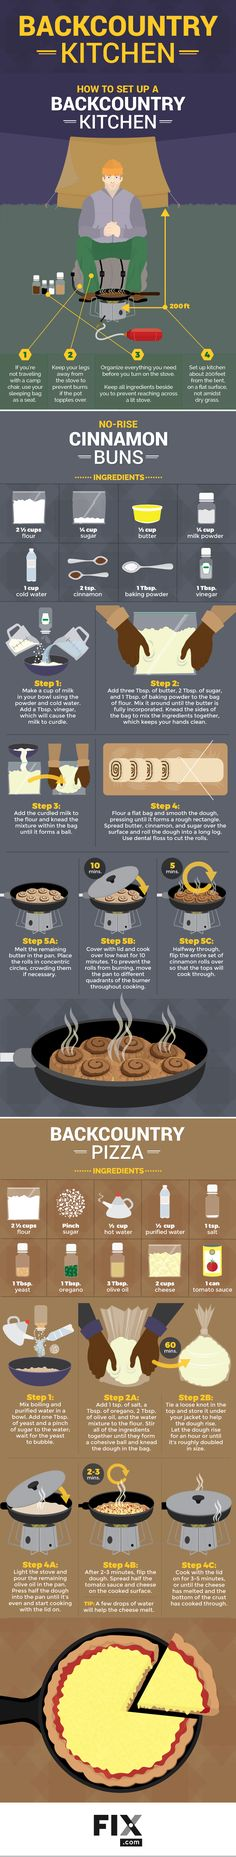 This infographic gives quick and easy recipes to make while camping and hiking.The pilgrims would have had to be able to make food that is easy to eat on the go that is also easy to make.